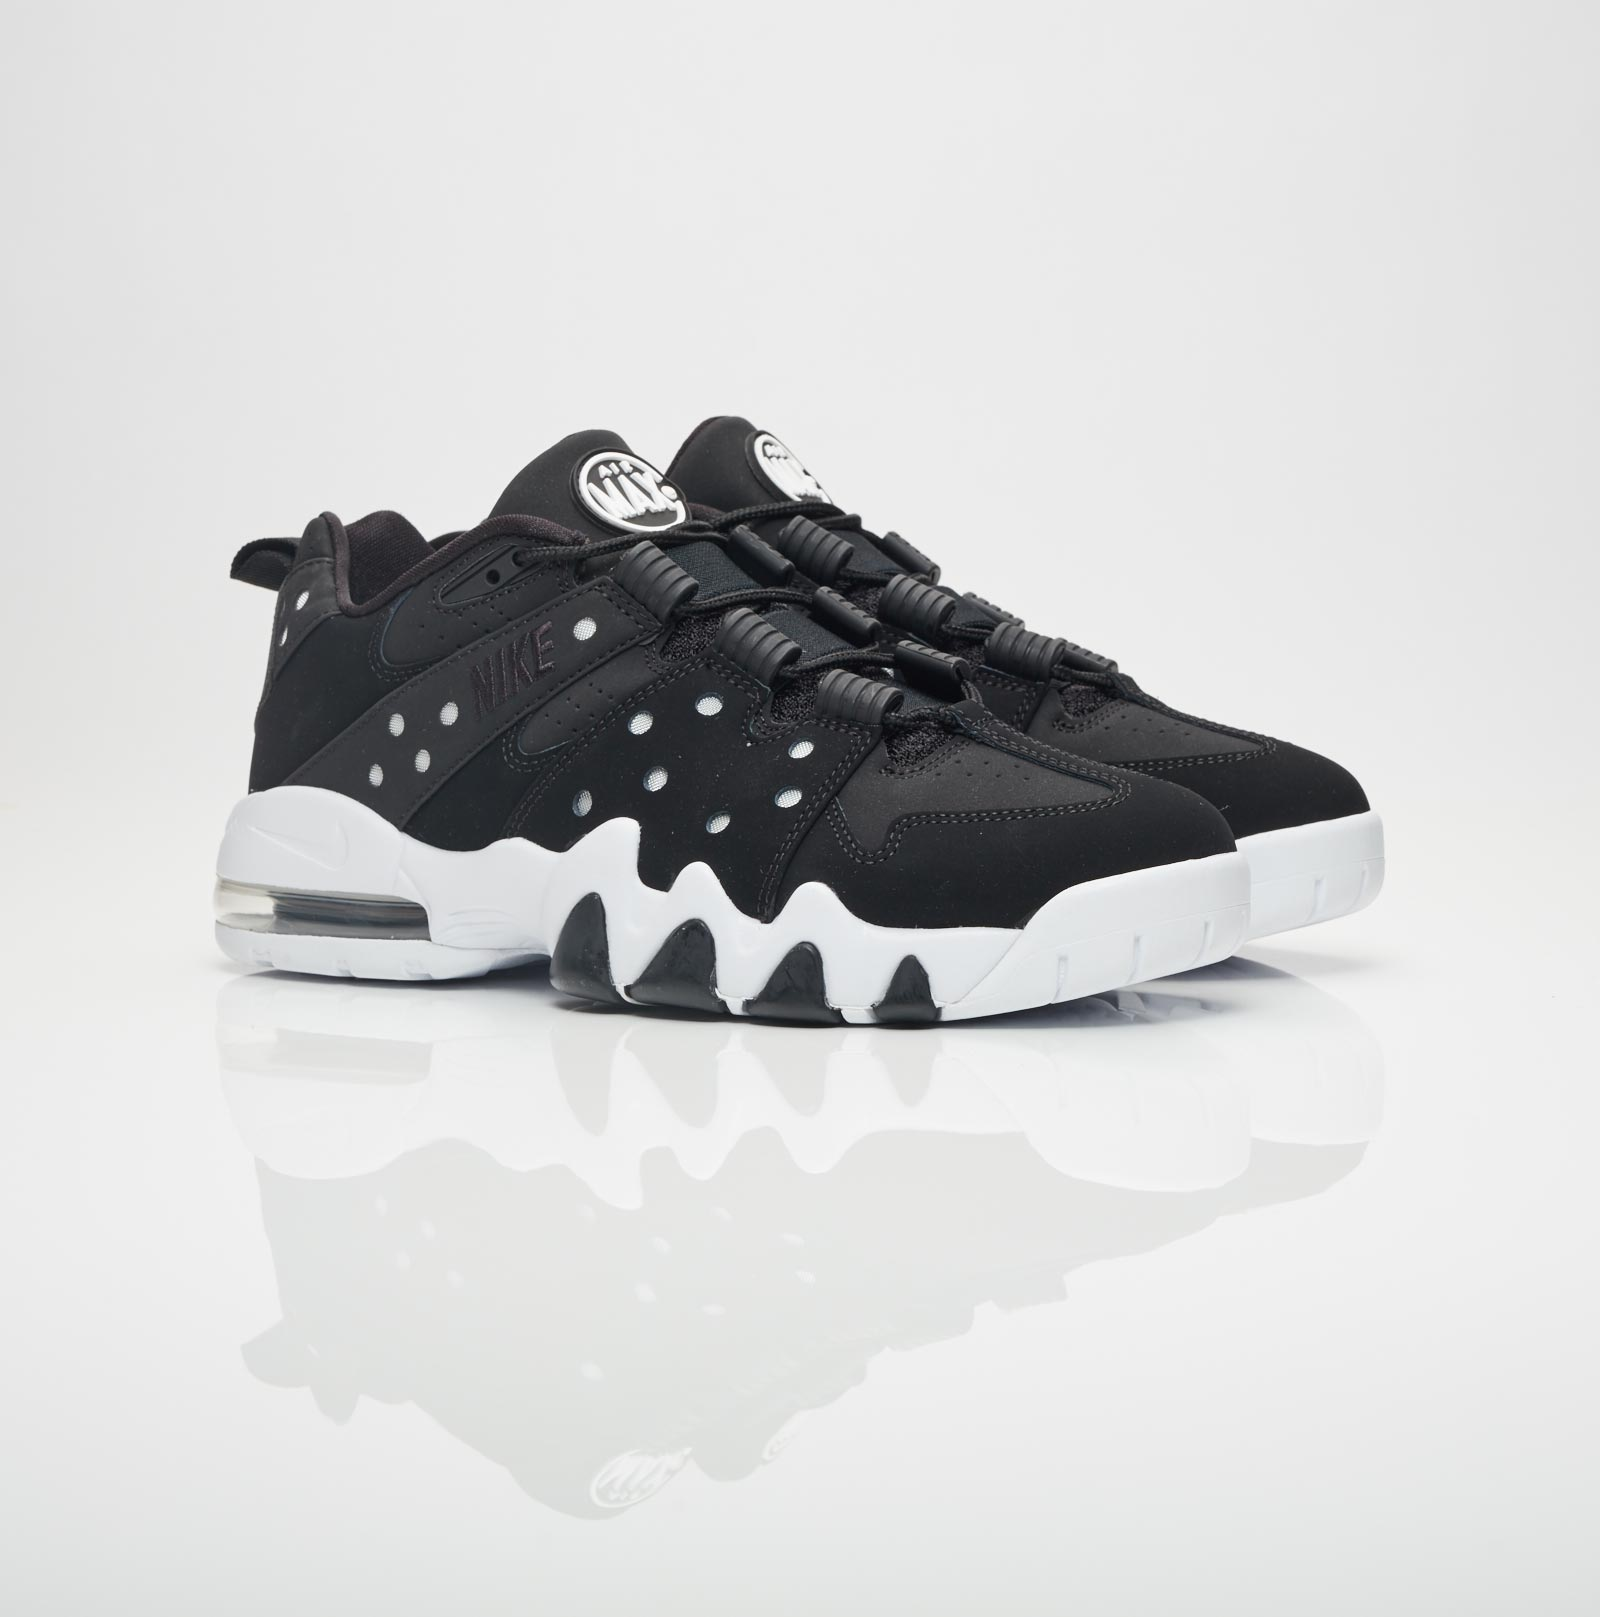 buy popular afa34 835f5 Nike Air Max2 CB 94 Low - 917752-001 - Sneakersnstuff | sneakers ...